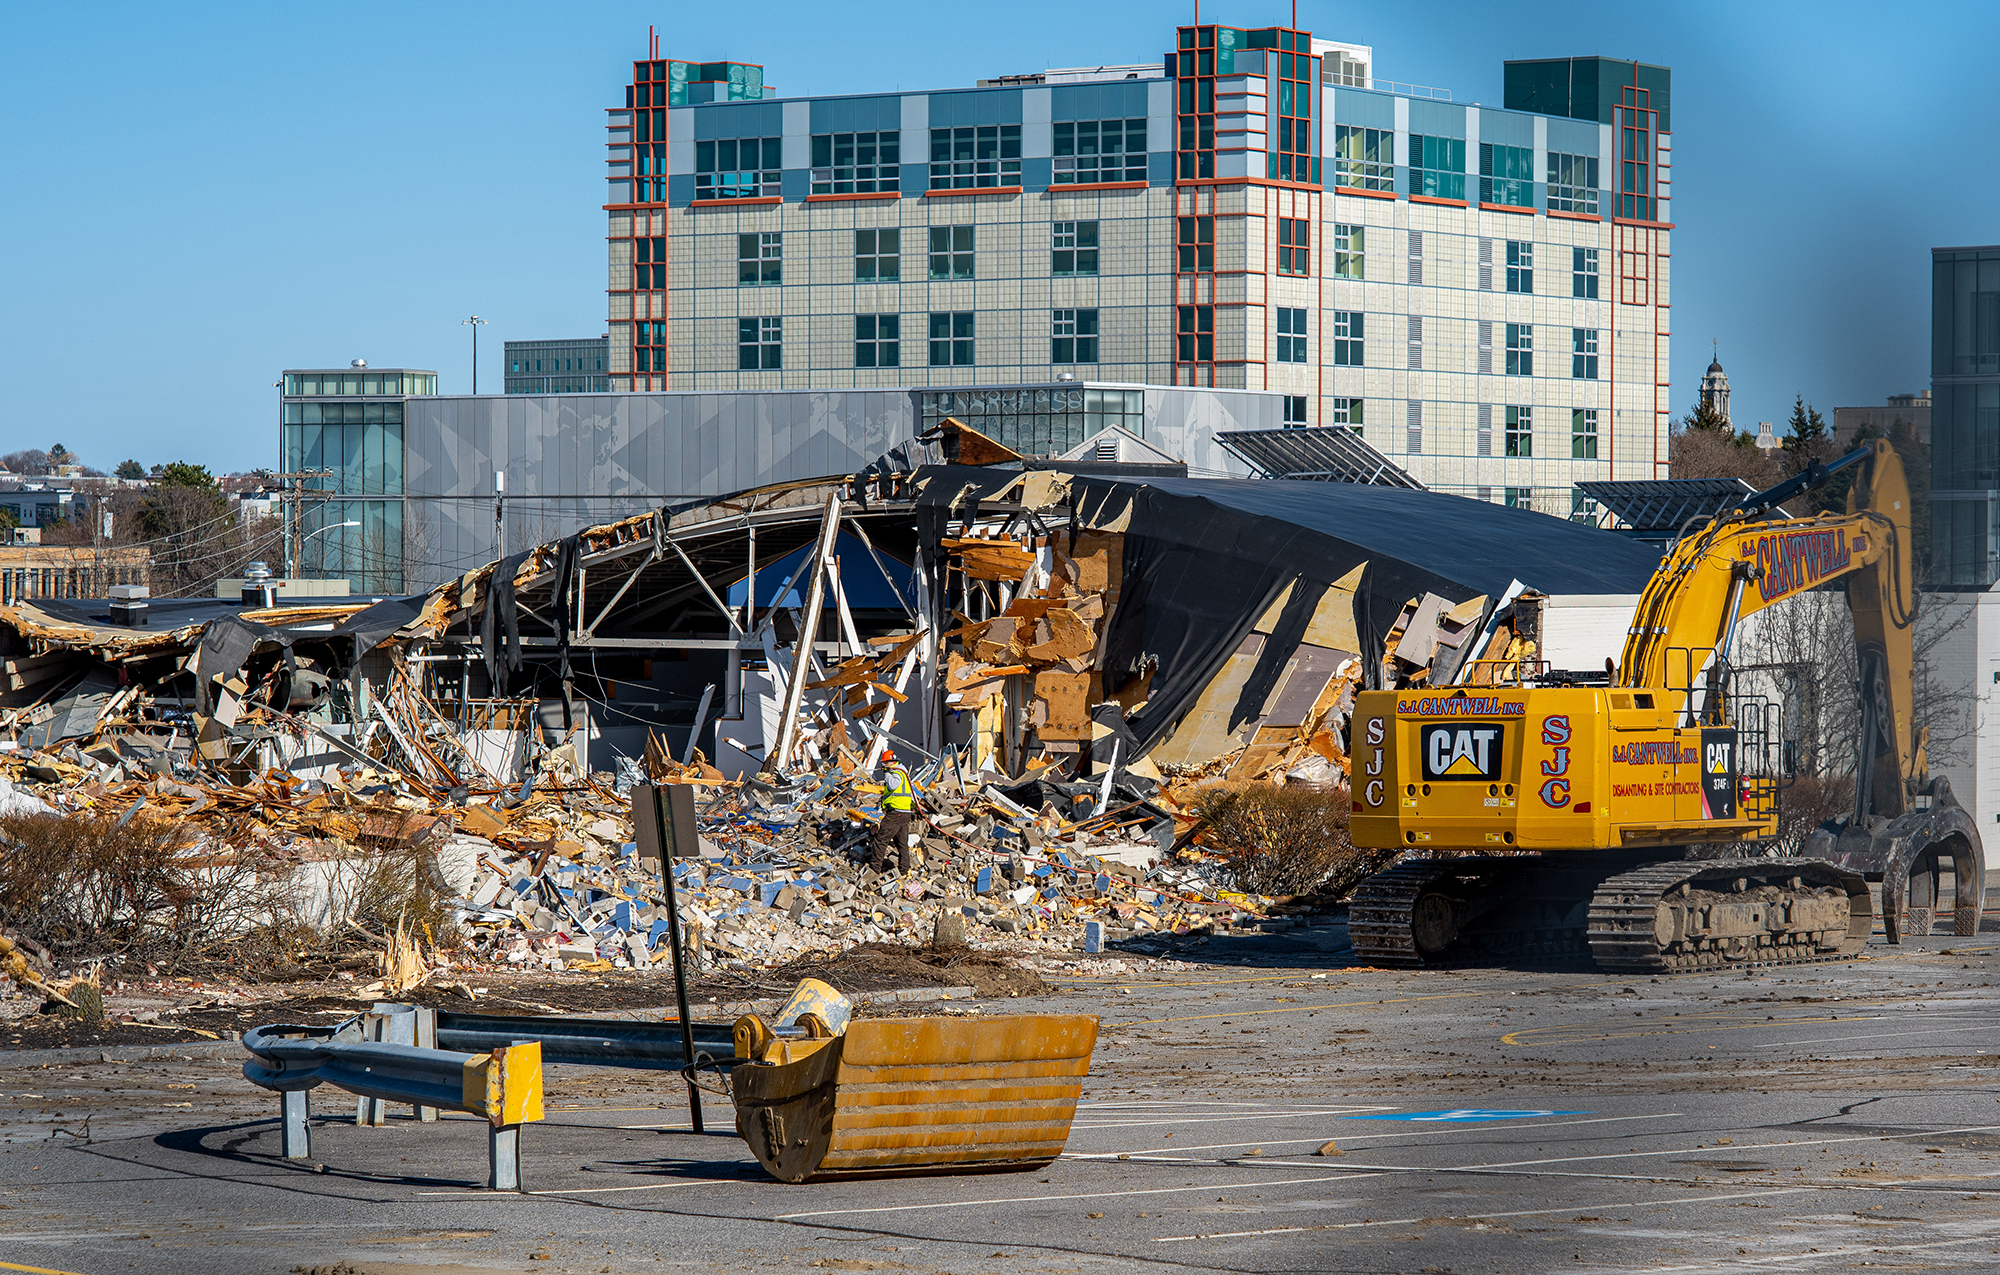 A photo of the demolition of Woodbury Commons at USM